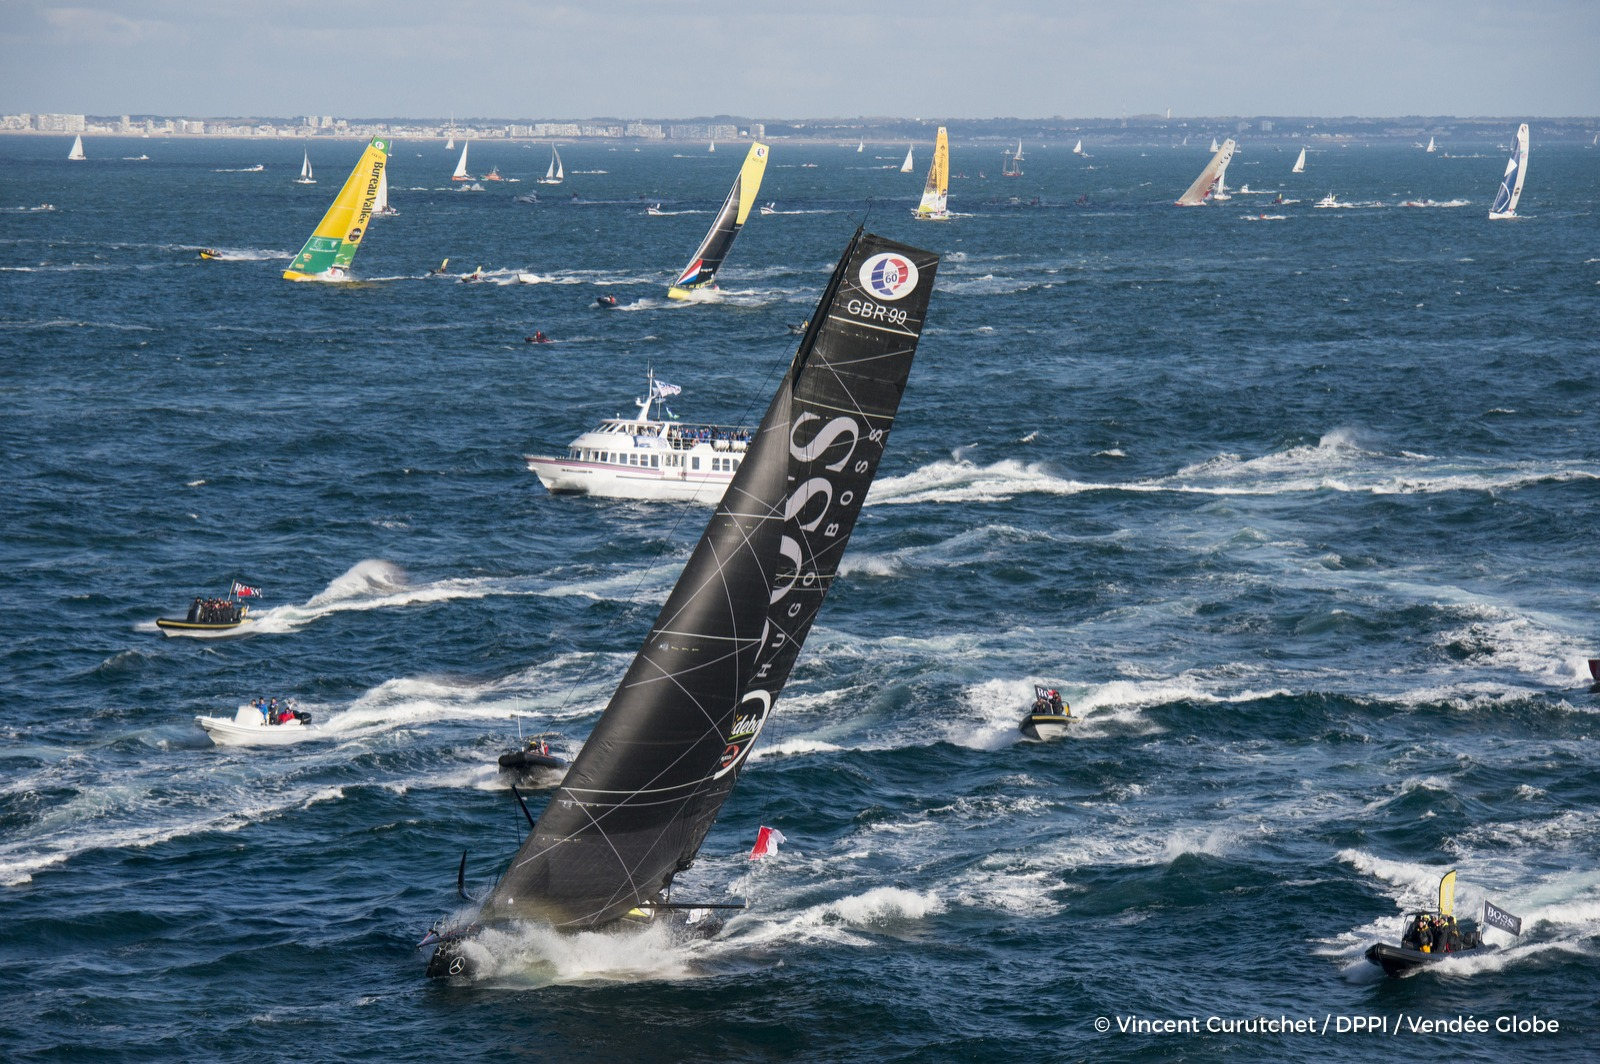 Alex Thomson's Hugo Boss. Pic by Vincent Curutchet/ DPPI/ Vendee Globe